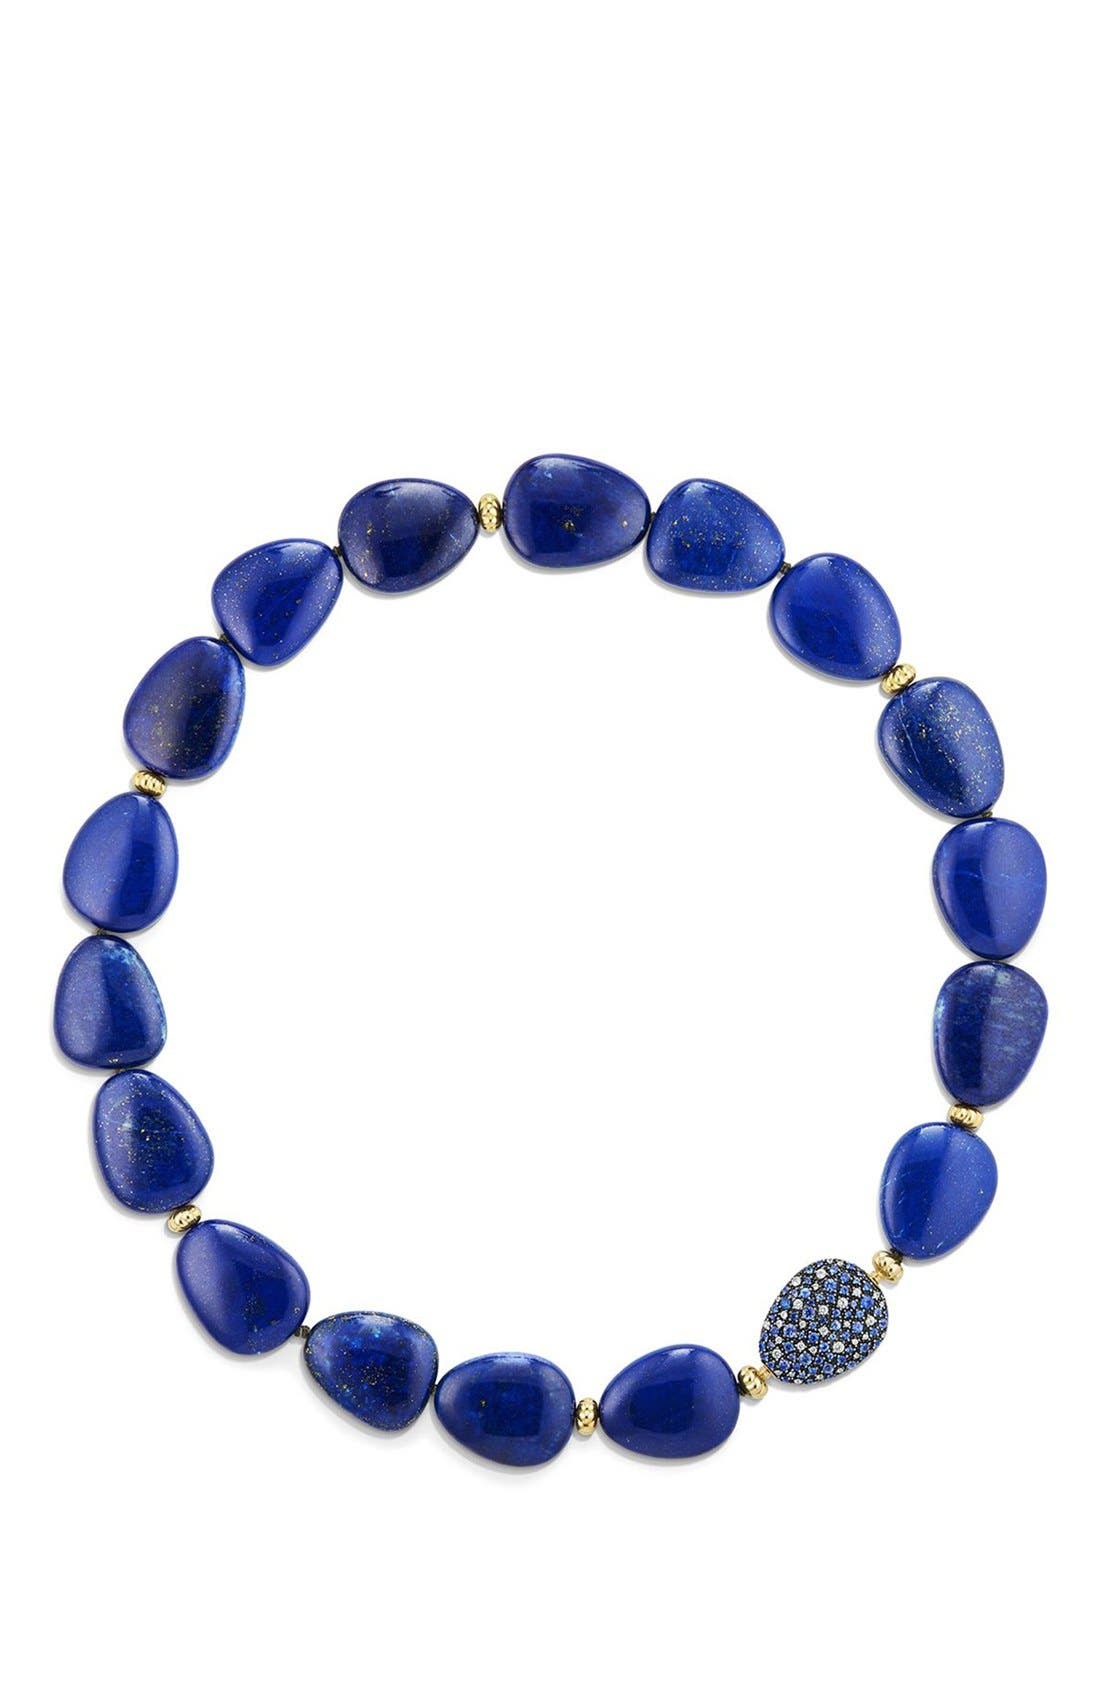 Alternate Image 1 Selected - David Yurman 'Bead & Chain' Short Necklace with Jasper & Sapphires in 18K Gold